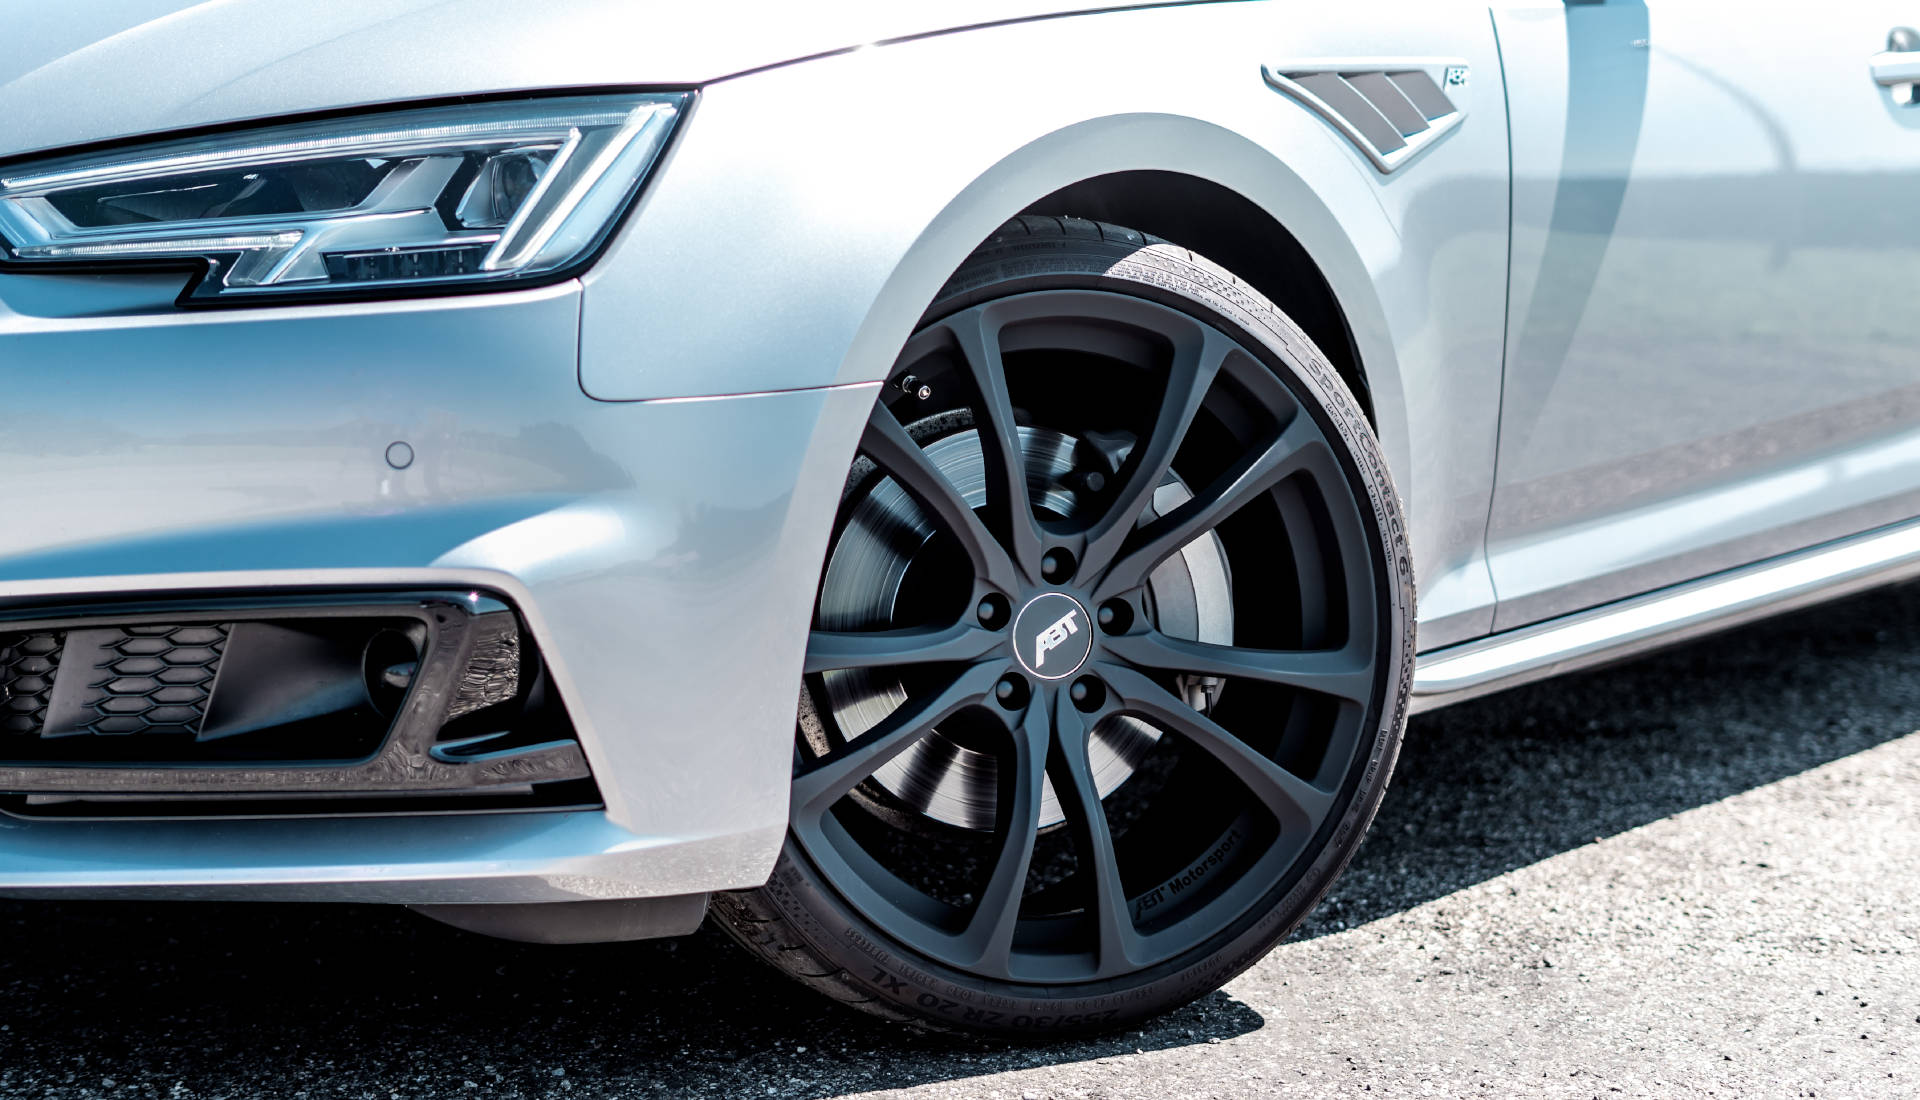 TRANSFORM YOUR AUDI A4 TO AN ABT